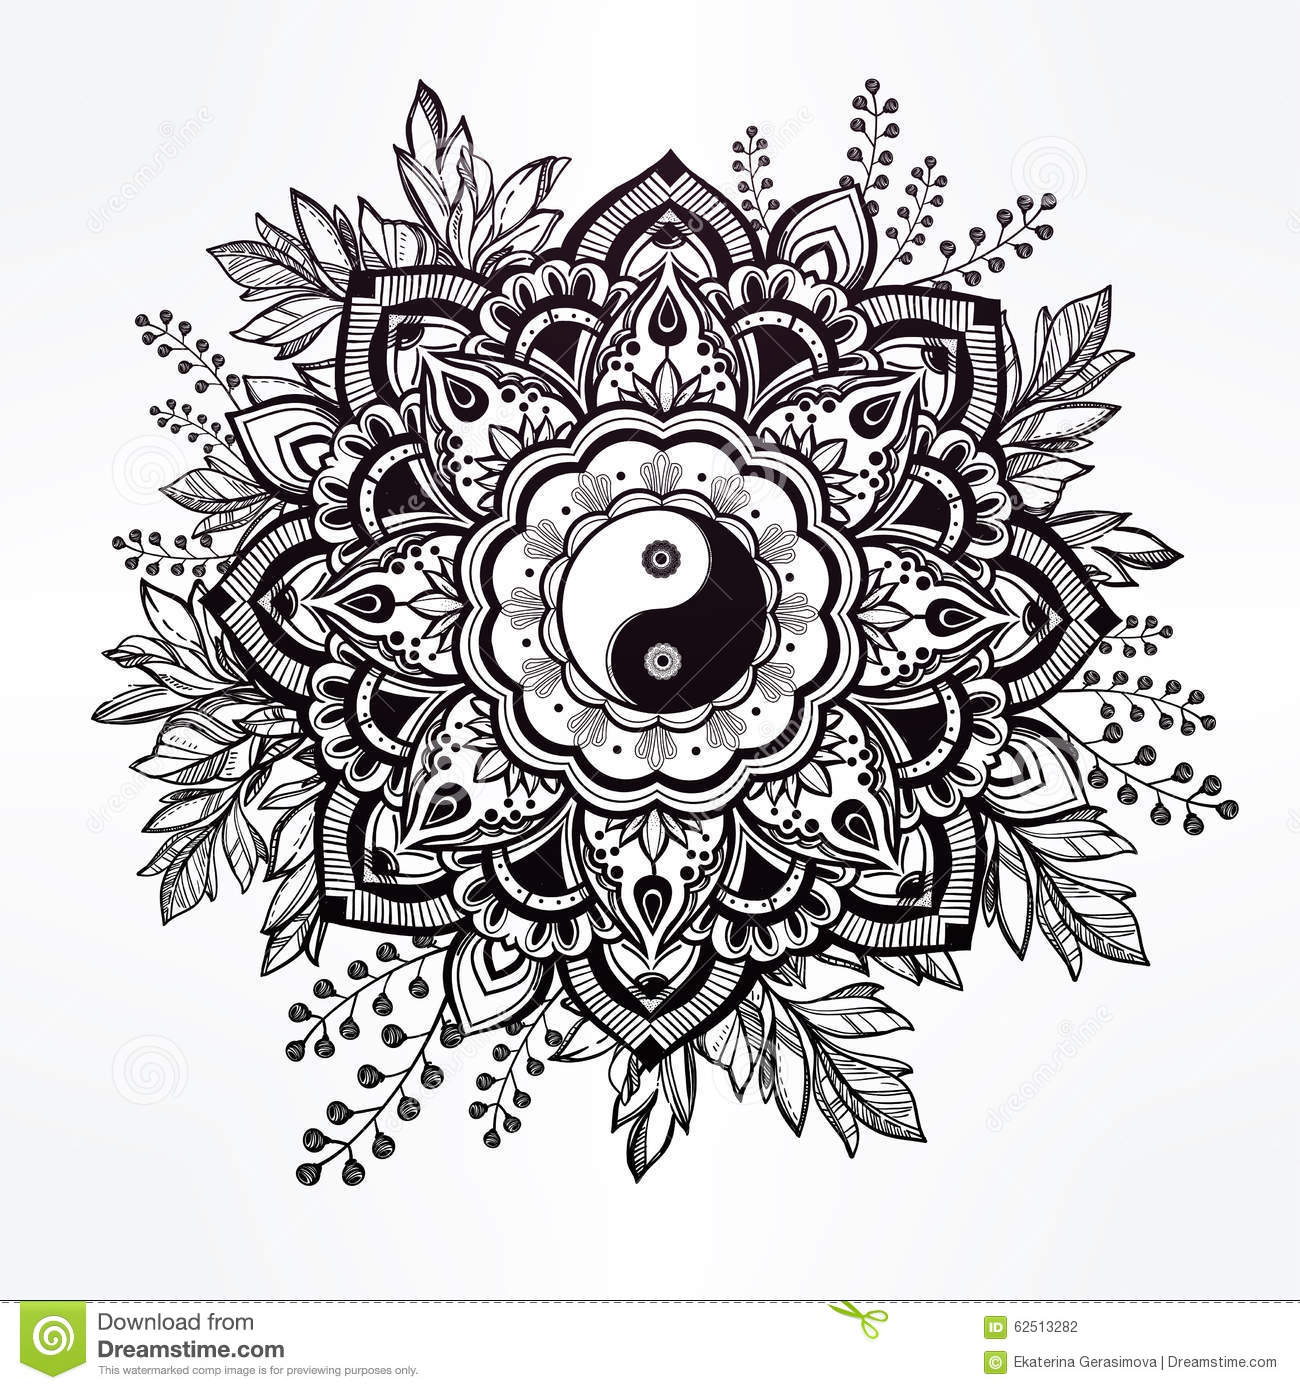 ornate flower with yin and yang symbol stock vector Koi Fish Drawings Yin and Yang Koi Fish